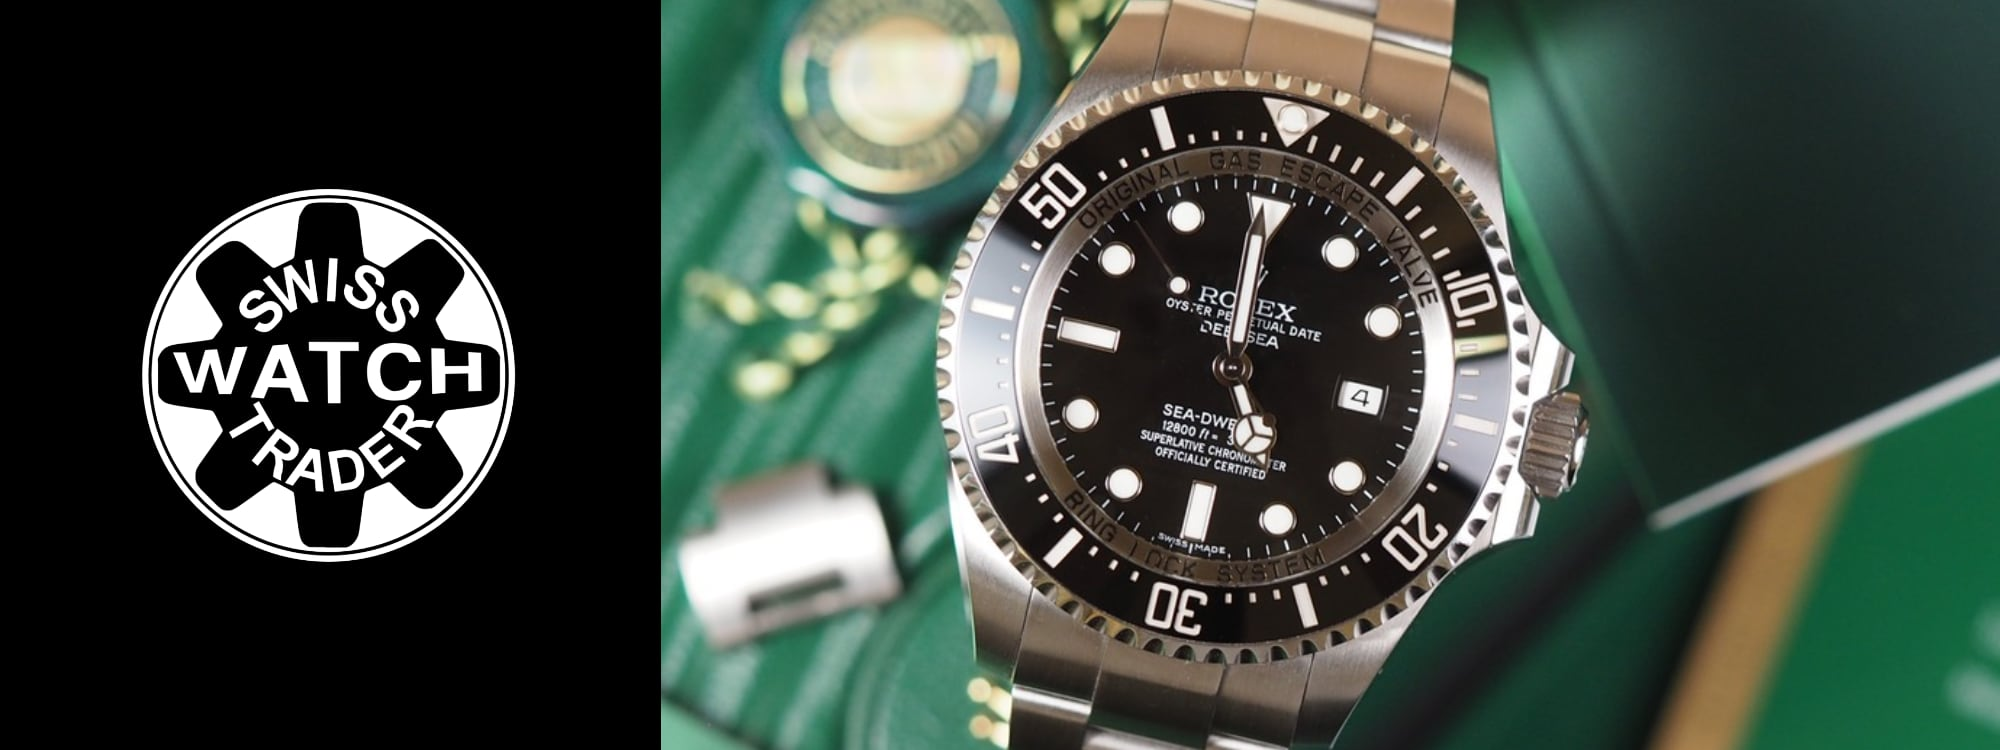 Rolex Deepsea 116660 Watches For Sale